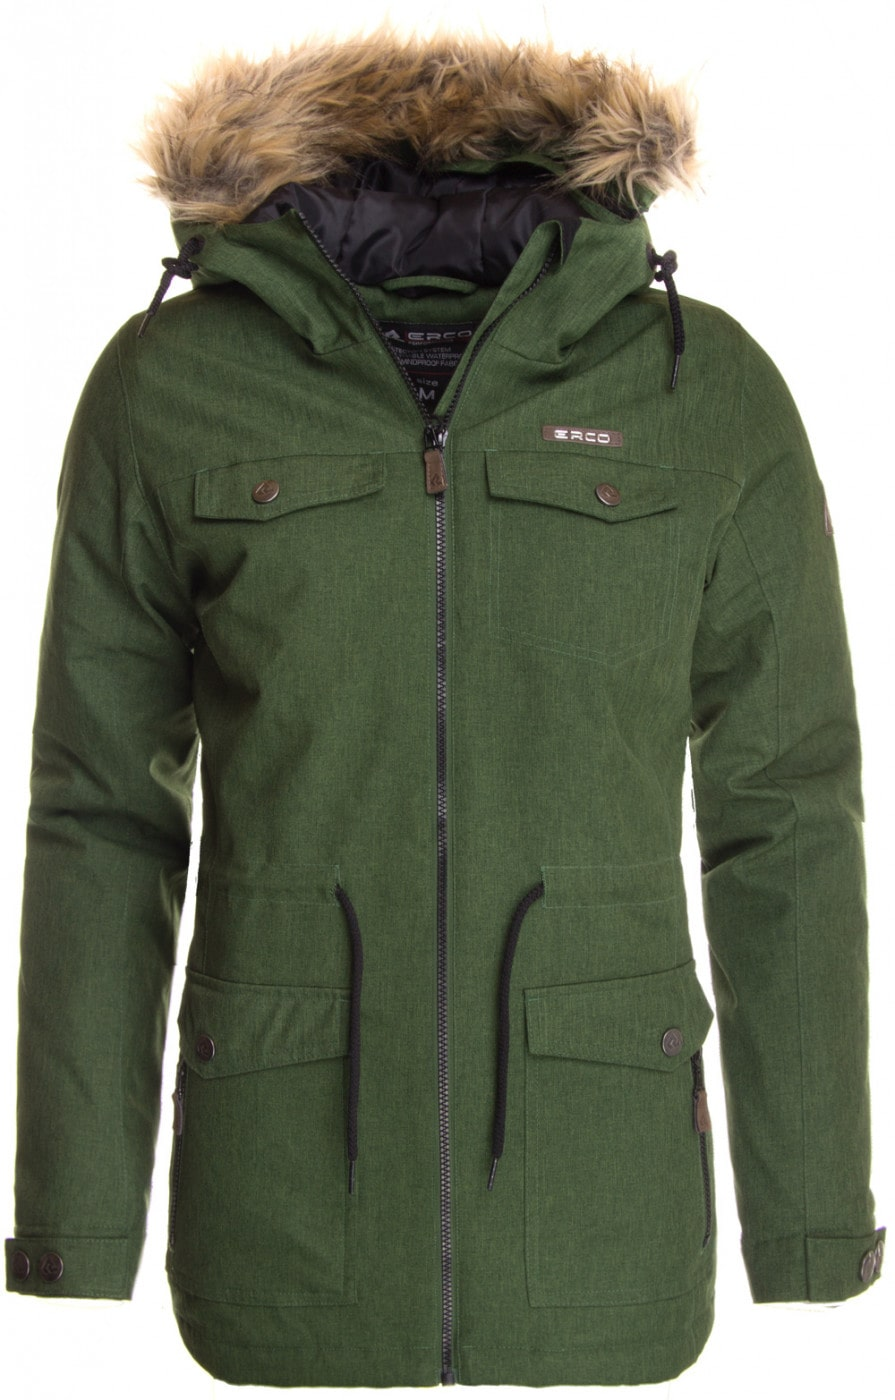 Winter jacket women's ERCO DARONIA